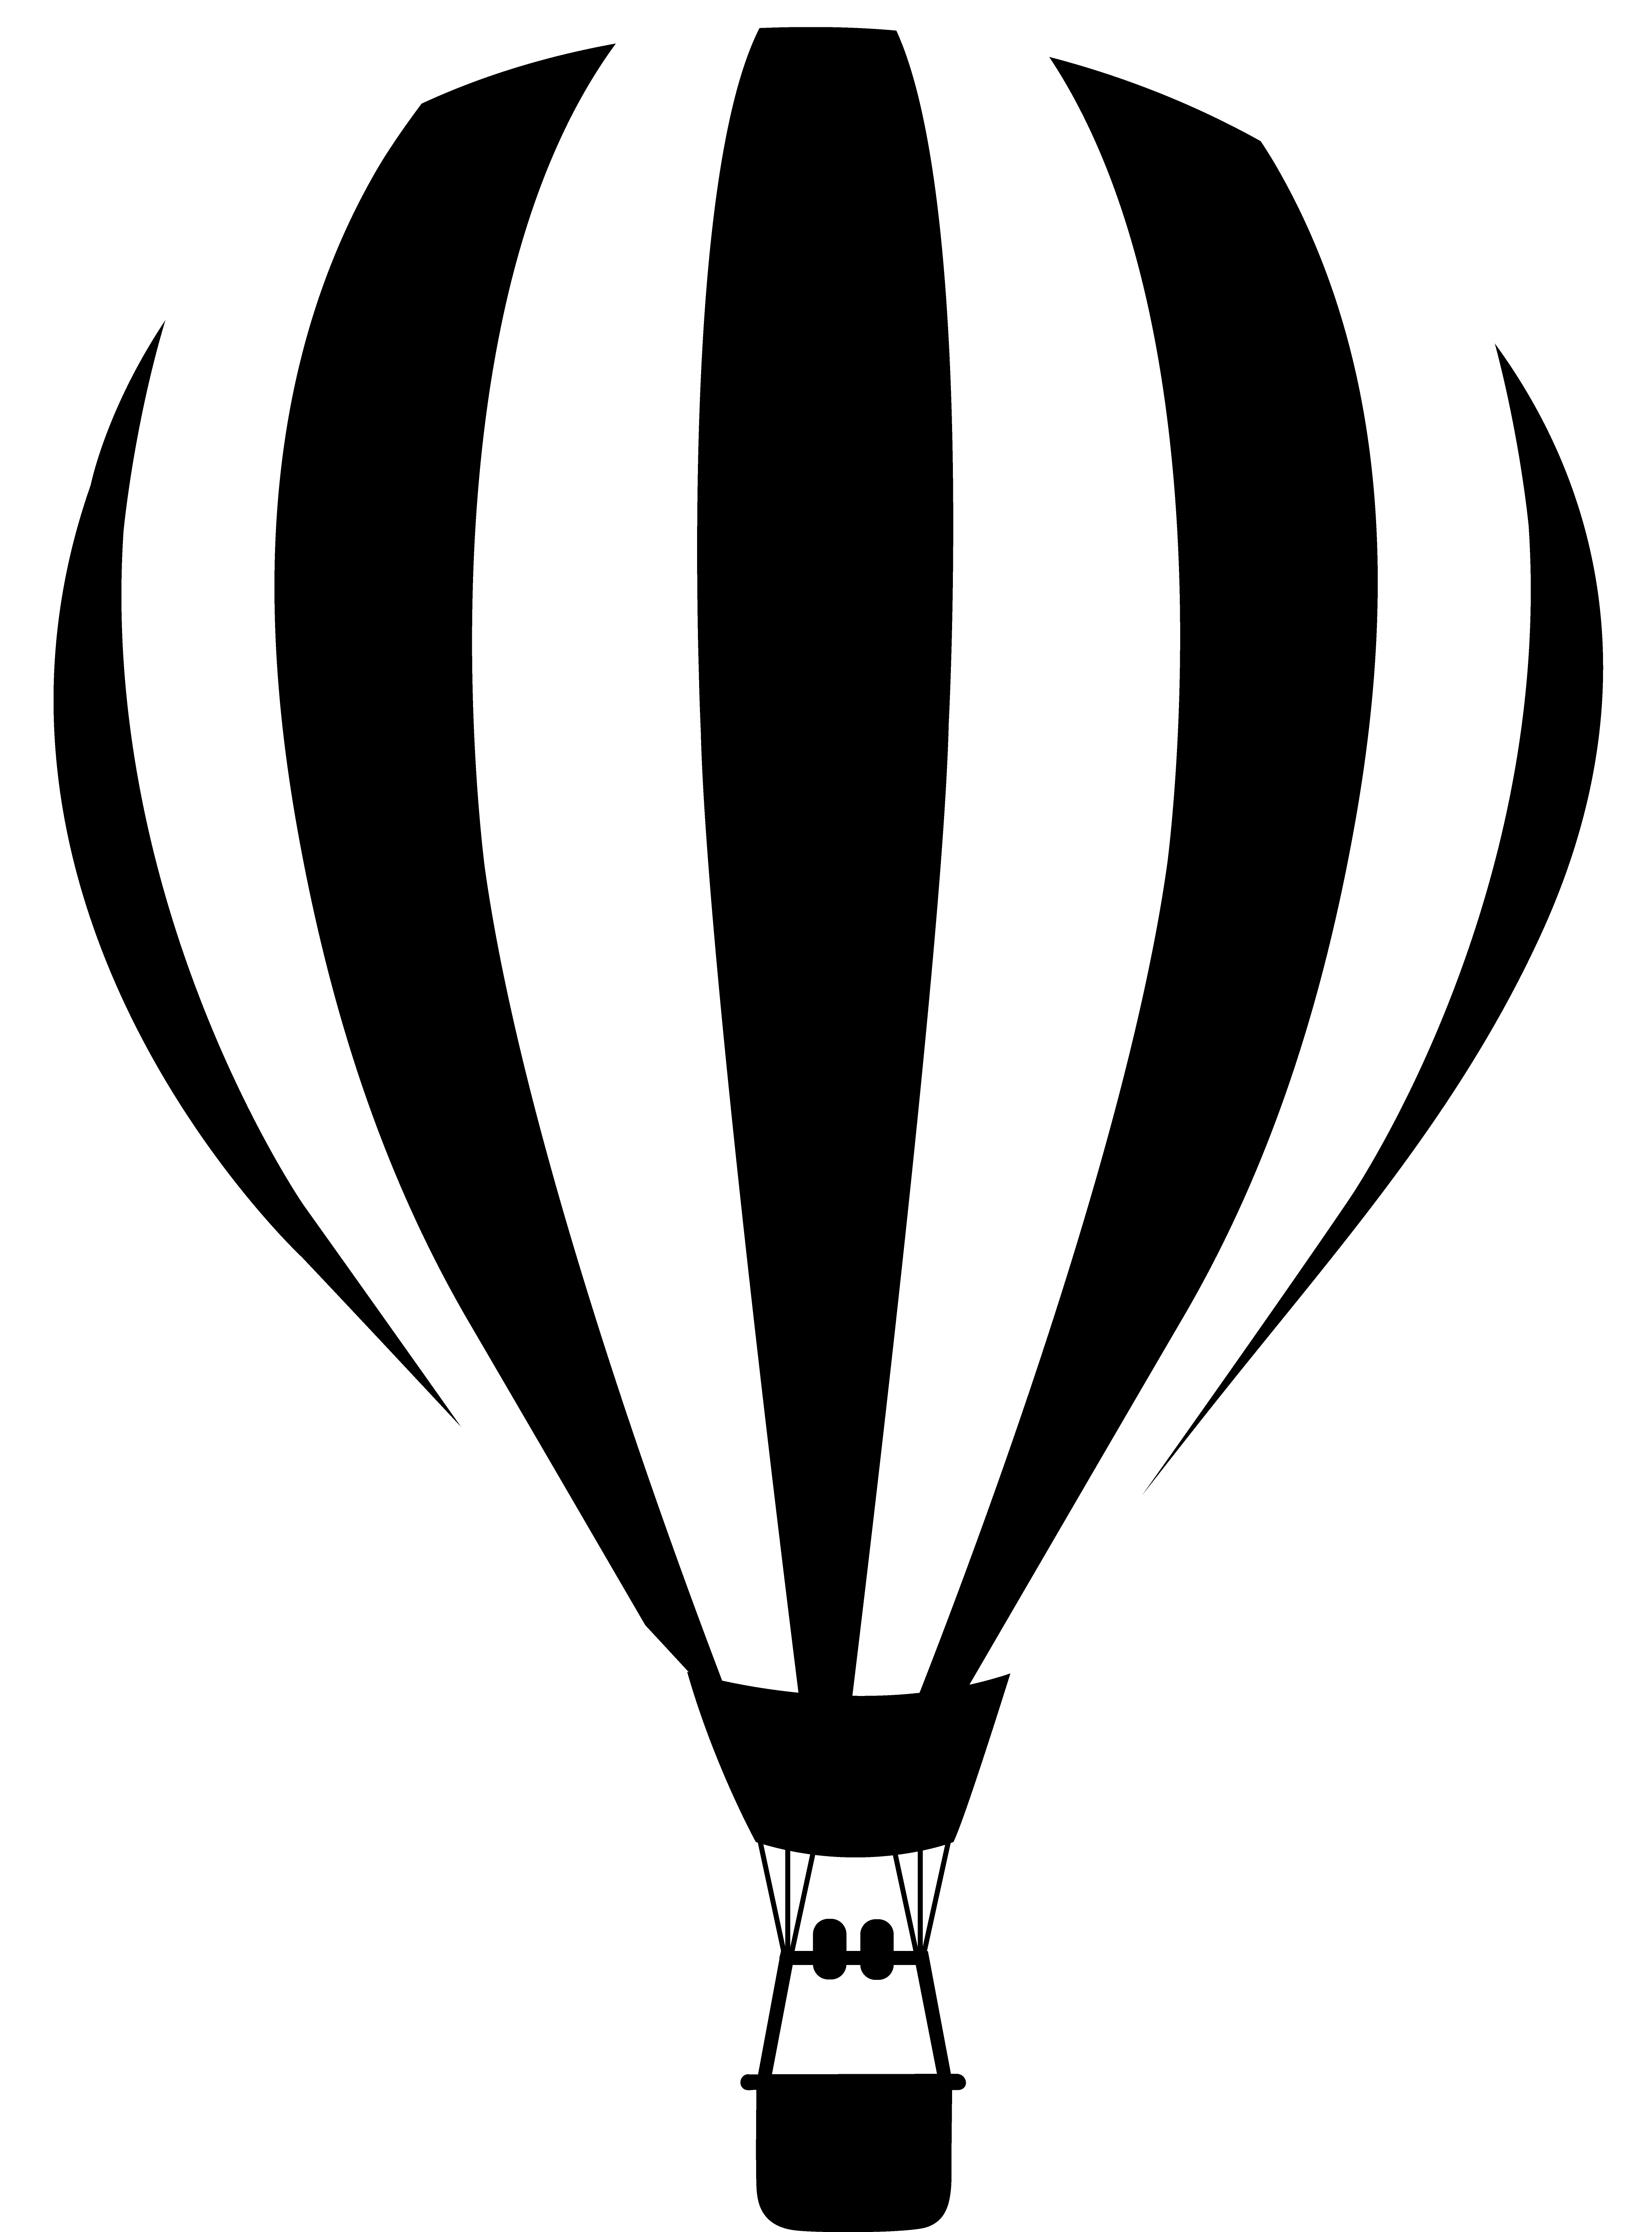 Hot Air Balloon Silhouette Vector at GetDrawings.com.